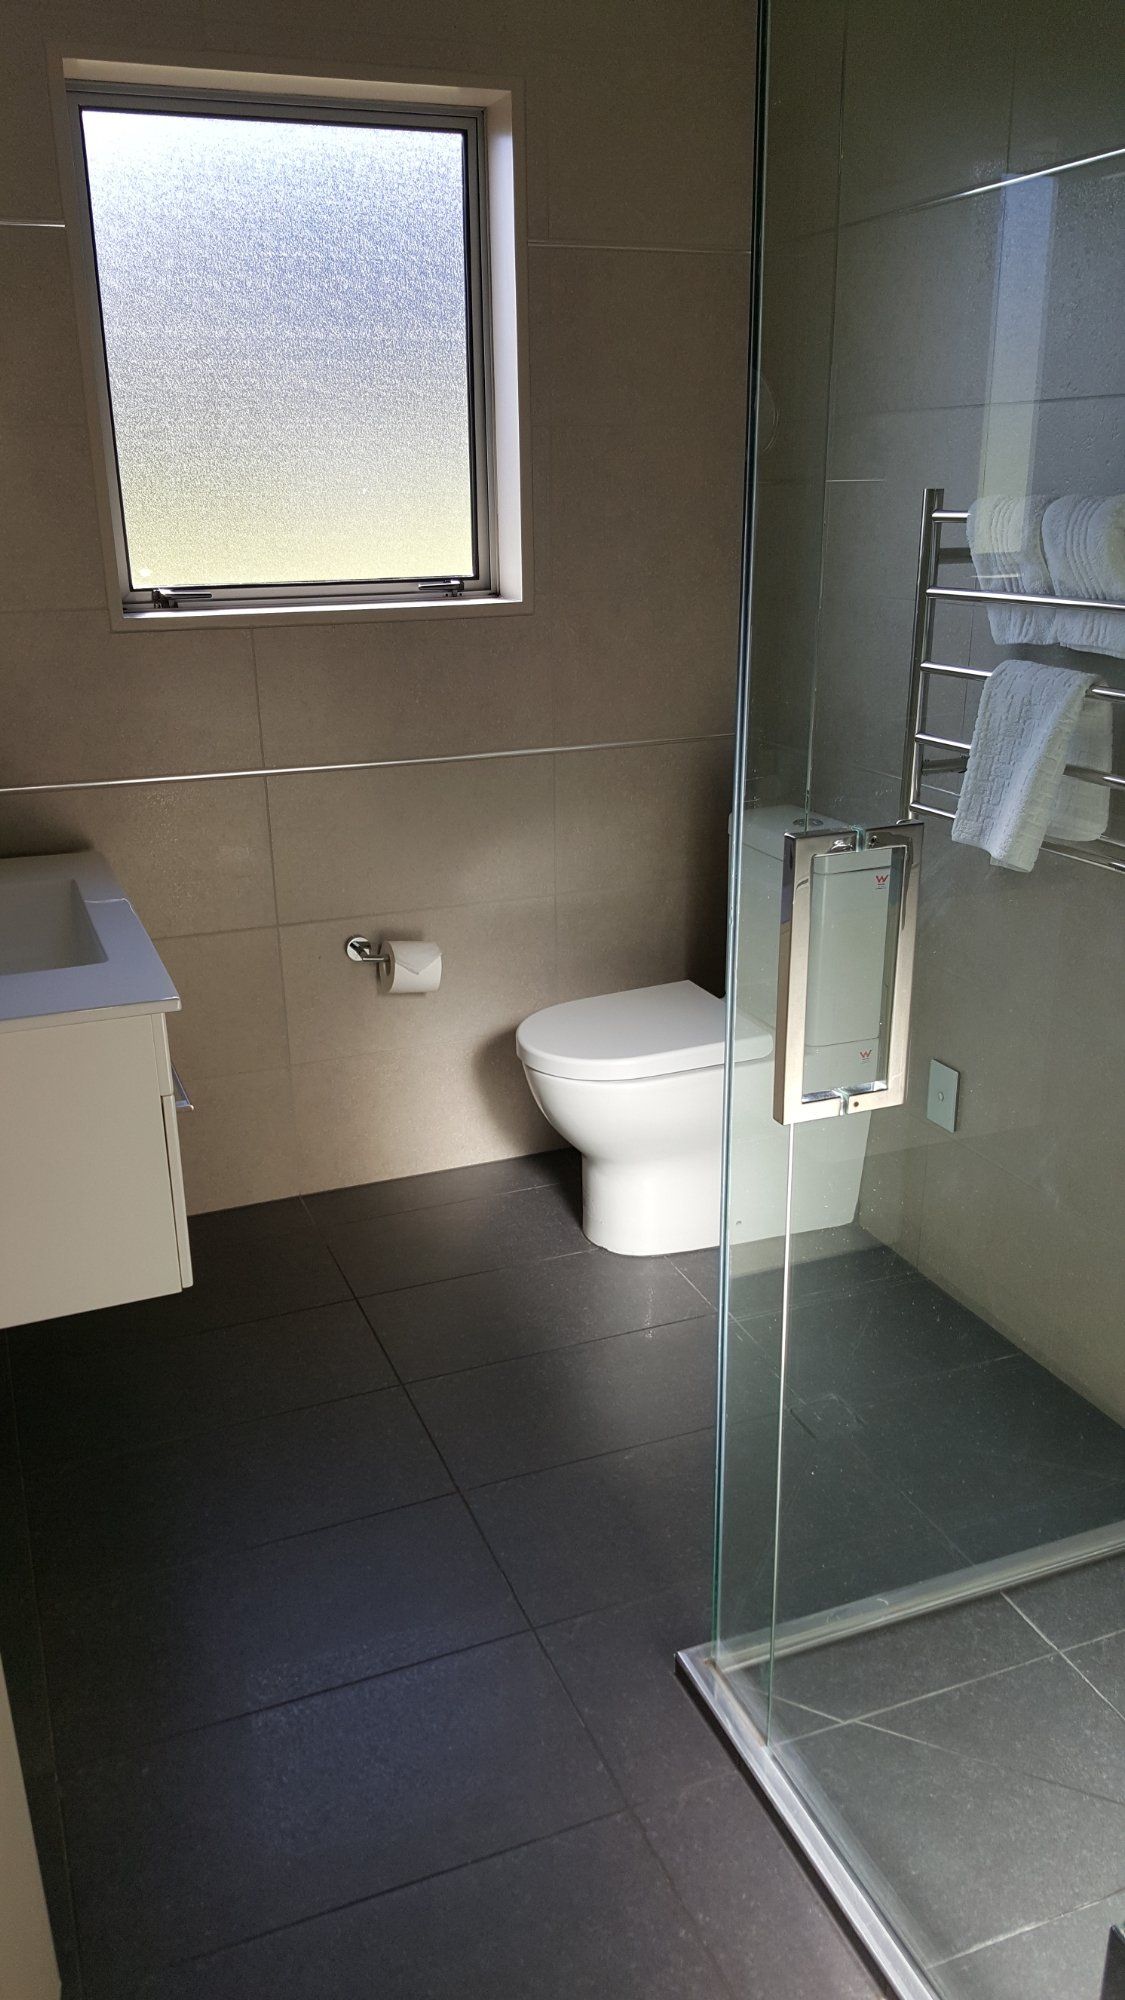 Bathroom Fixtures Queenstown alexis queenstown motor lodge and apartments - updated 2017 prices